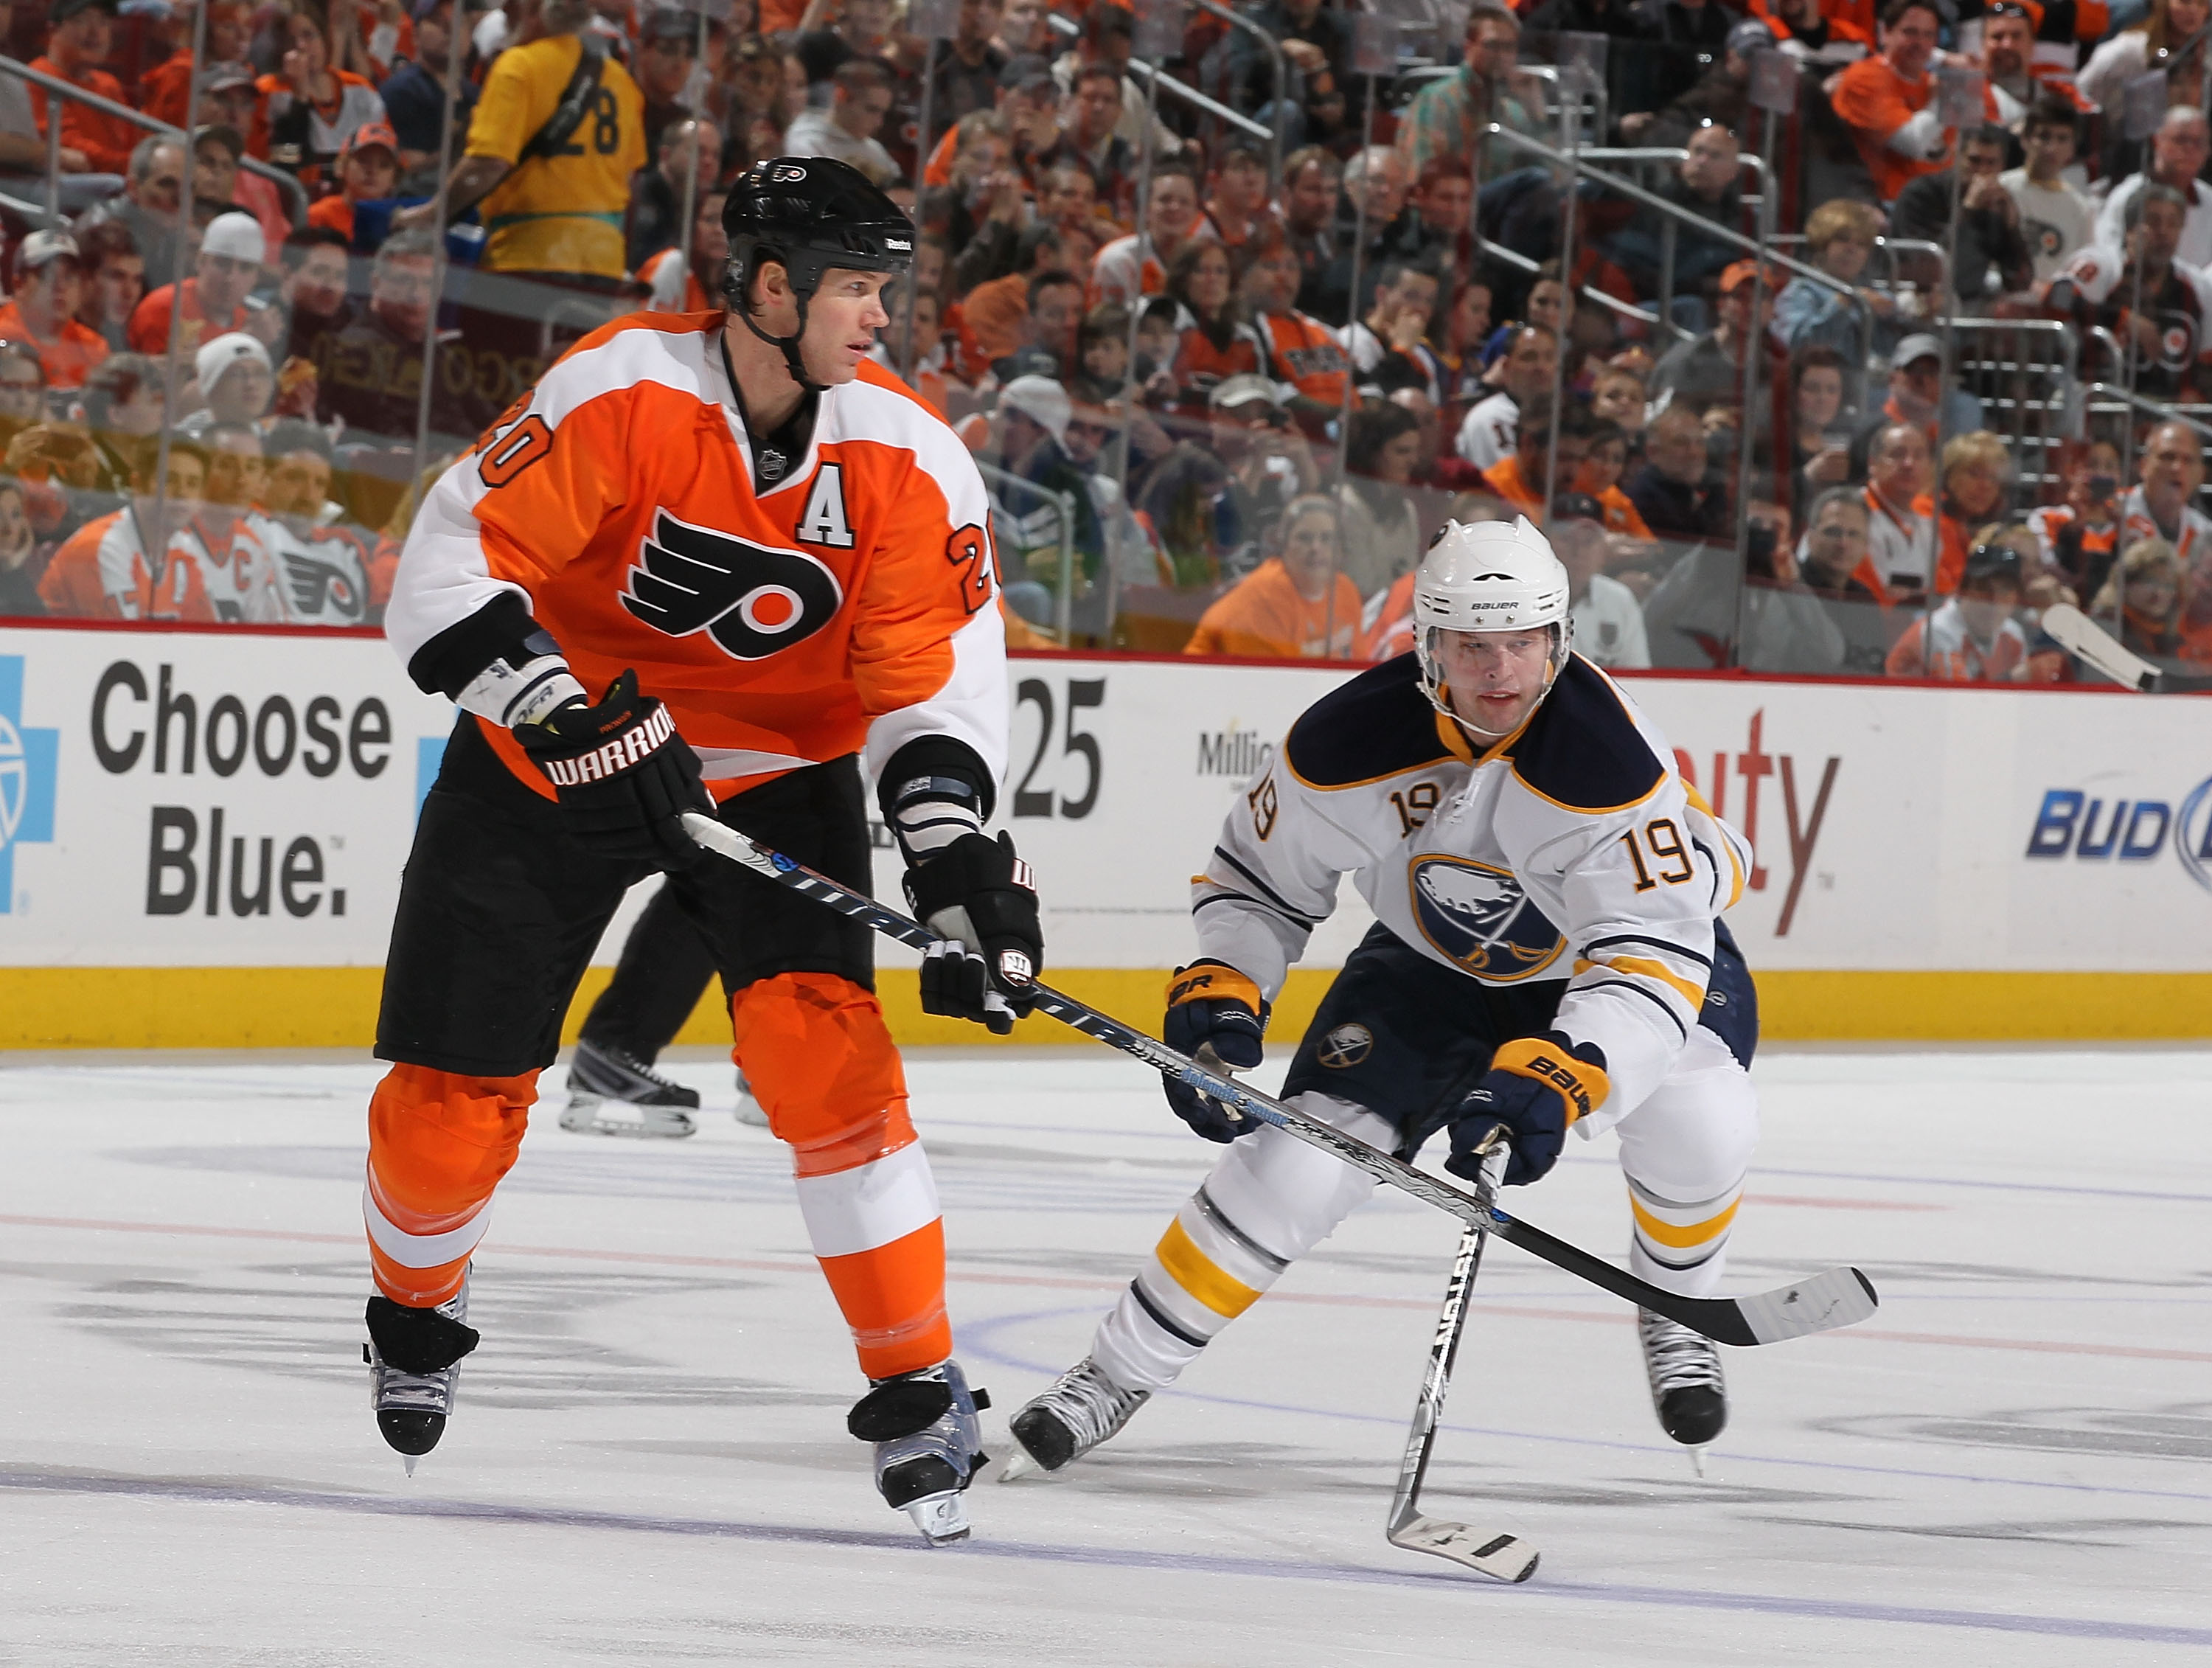 PHILADELPHIA - MARCH 05:  Tim Connolly #19 of the Buffalo Sabres and Chris Pronger #20 of The Philadelphia Flyers during their game on March 5, 2011 at The Wells Fargo Center in Philadelphia, Pennsylvania.  (Photo by Al Bello/Getty Images)